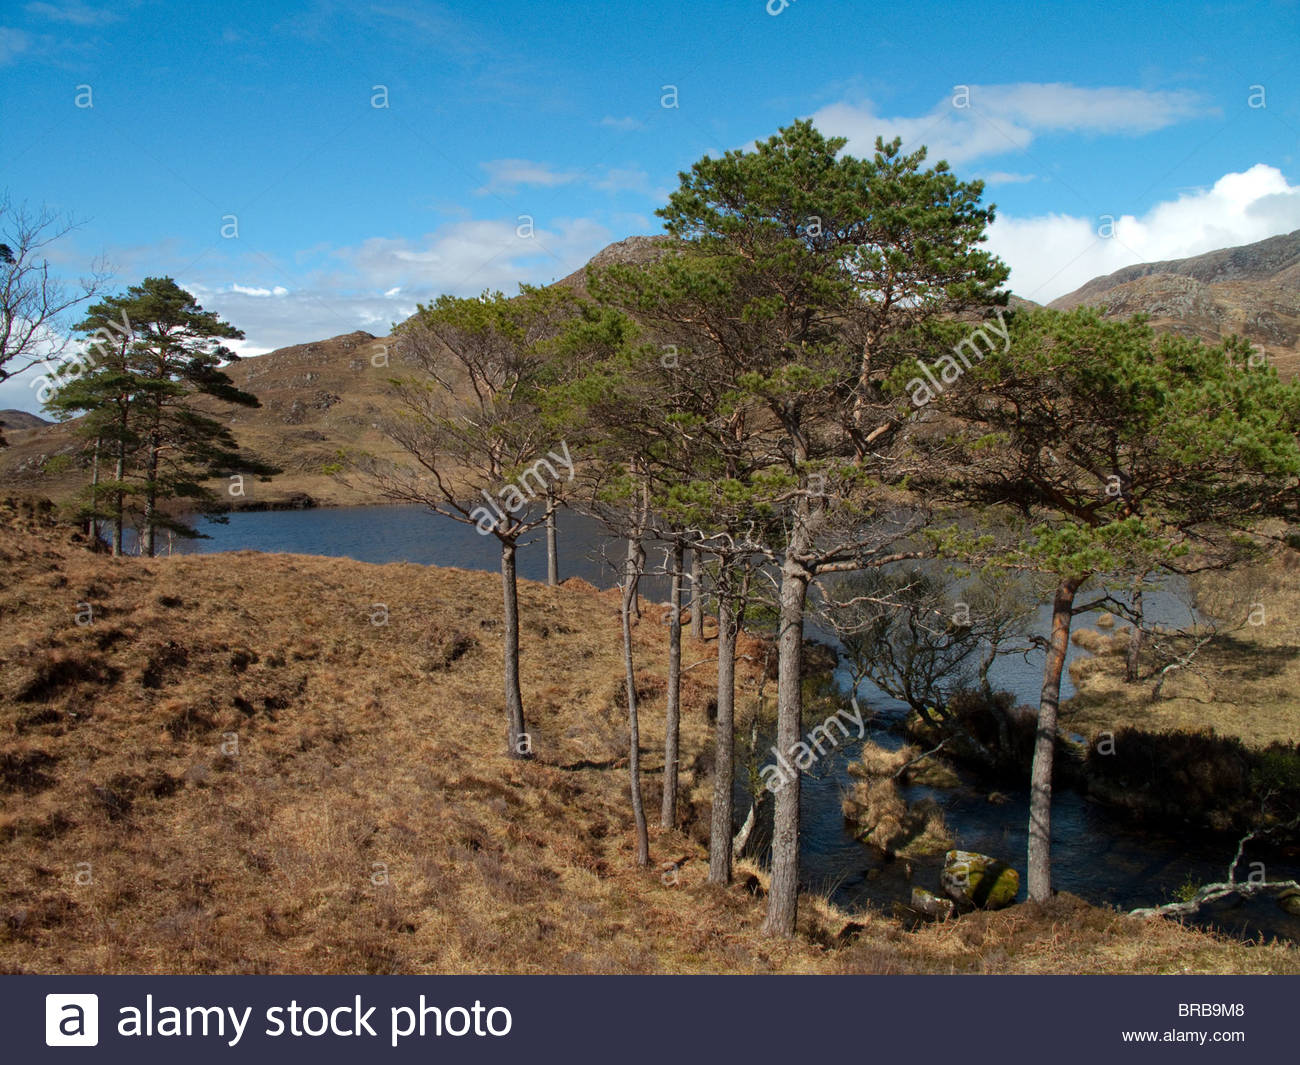 Trees along remote stream under blue sky - Stock Image